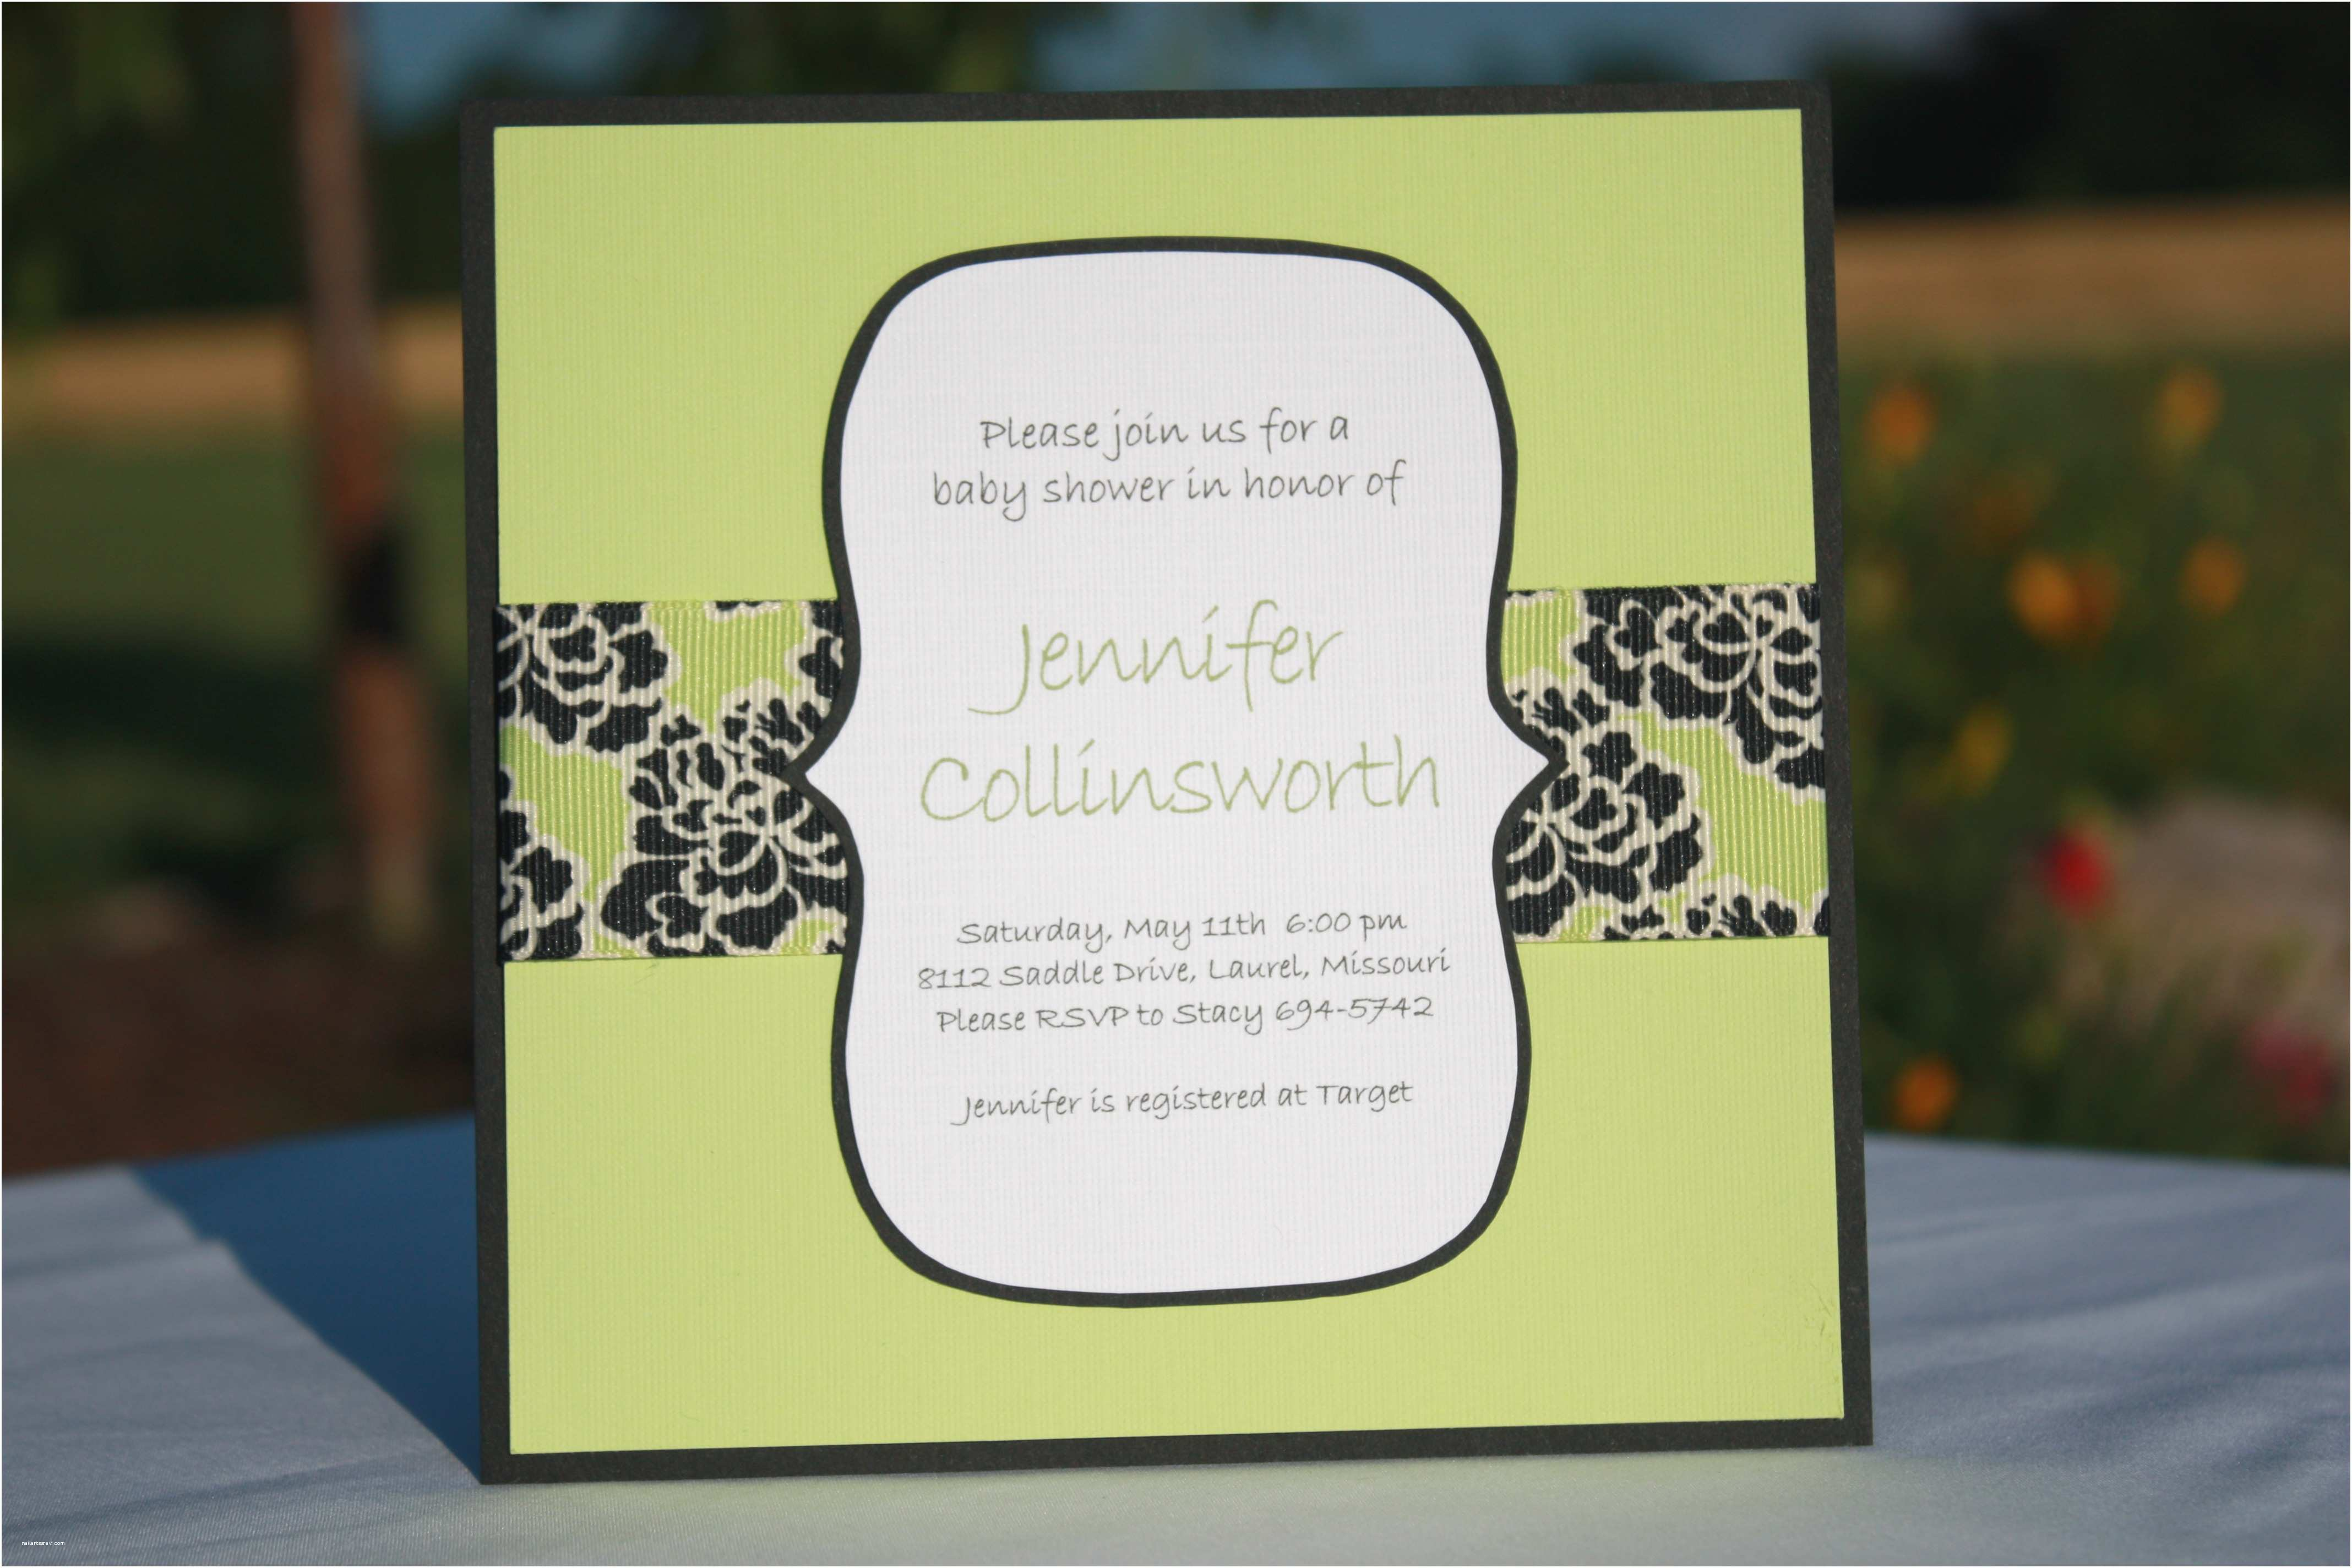 Diy Baby Shower Invitations Baby Shower Invitations How to Make Baby Shower